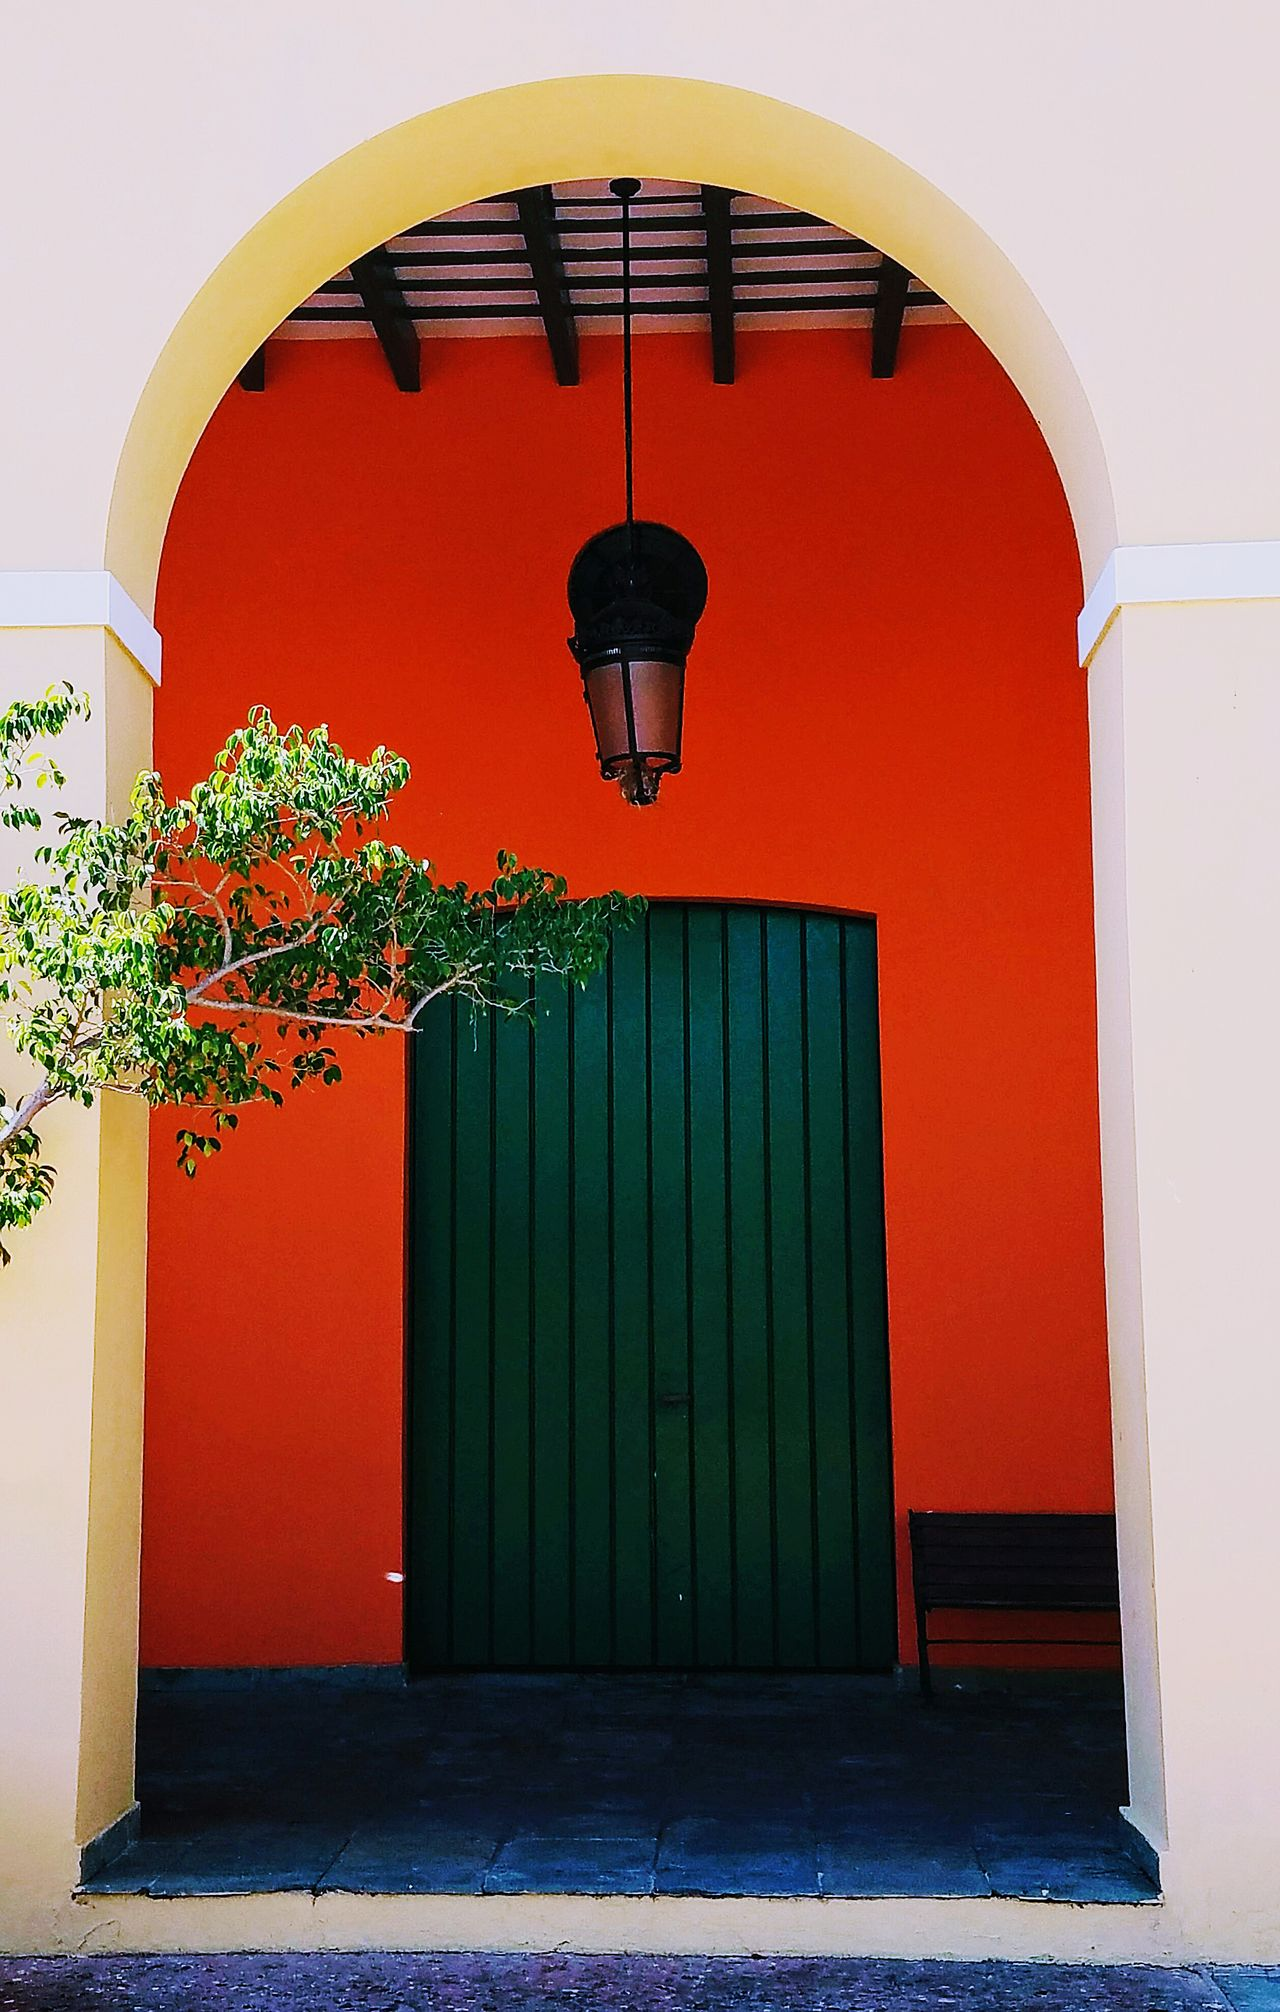 Door Ornate Perspective Minimalist Architecture Minimalism Architectural Detail Simple Elegance Architecture Colors Of My City San Juan PR The Architect - 2017 EyeEm Awards Light And Shadow Urban Exploration Fine Art Photography Full Length Built Structure Arch Simplicity Forms And Shapes